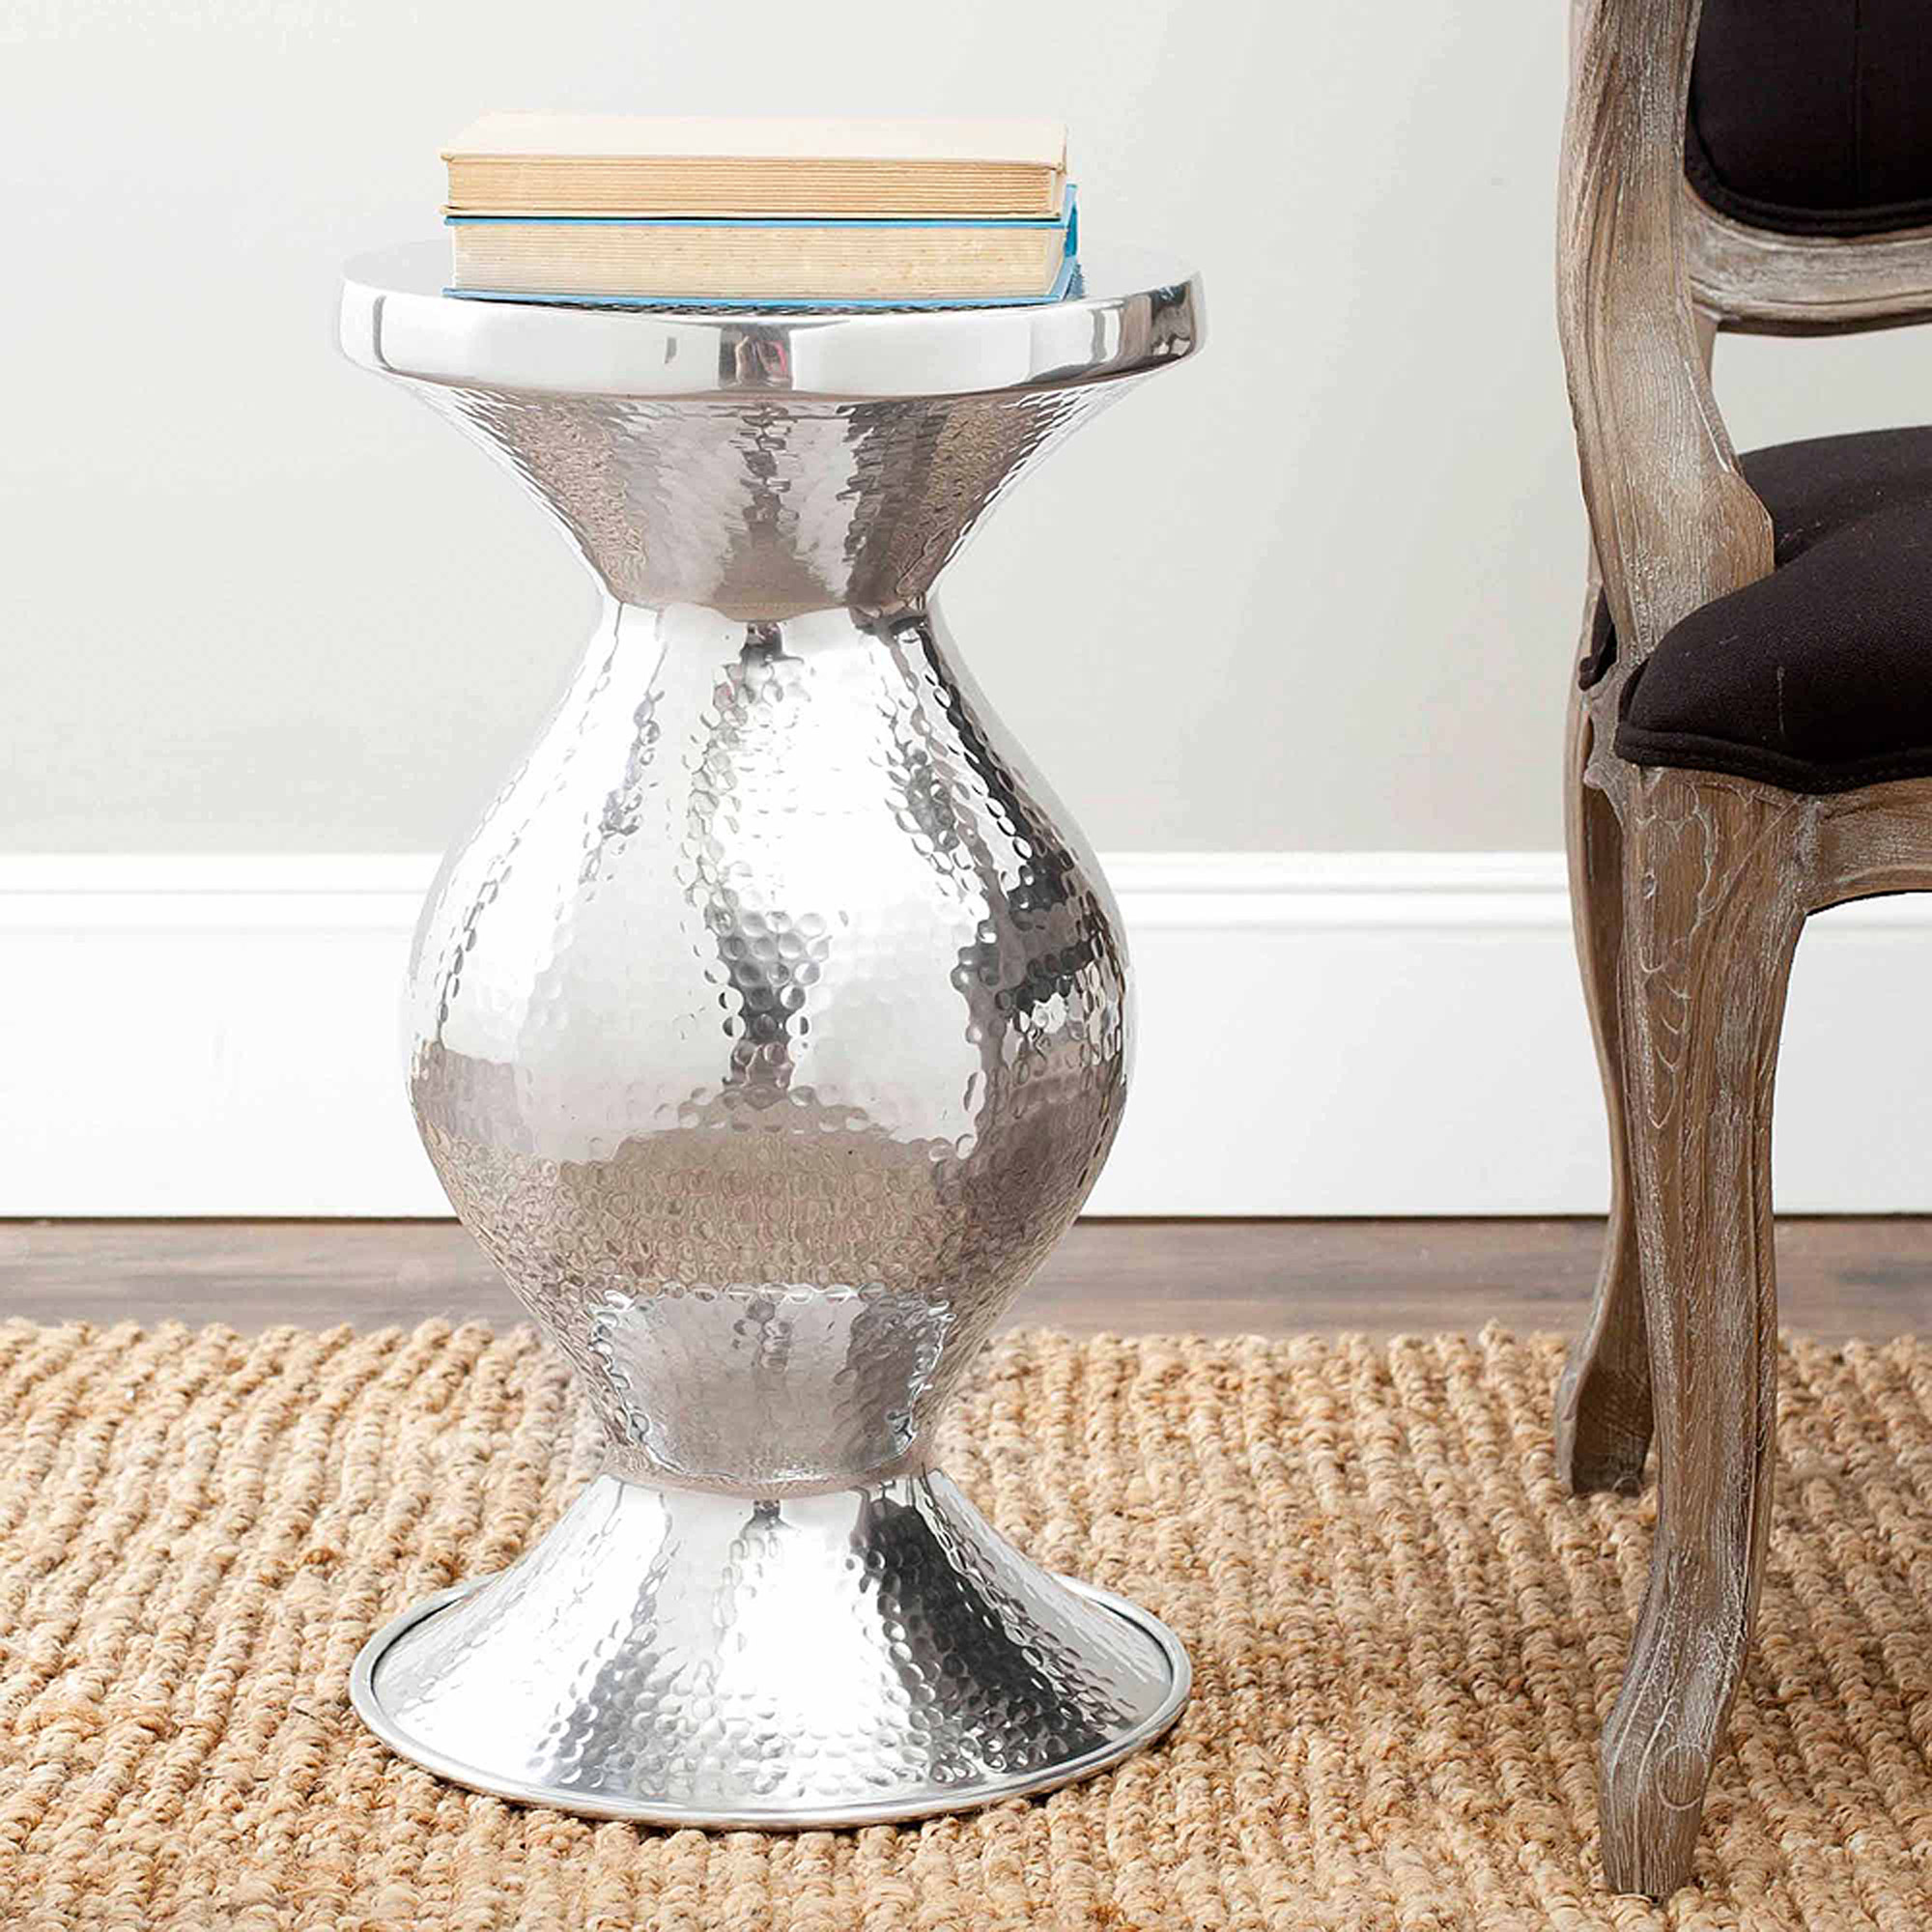 Safavieh Astrid Polished Aluminum Small Hammered Stool, Silver by Safavieh